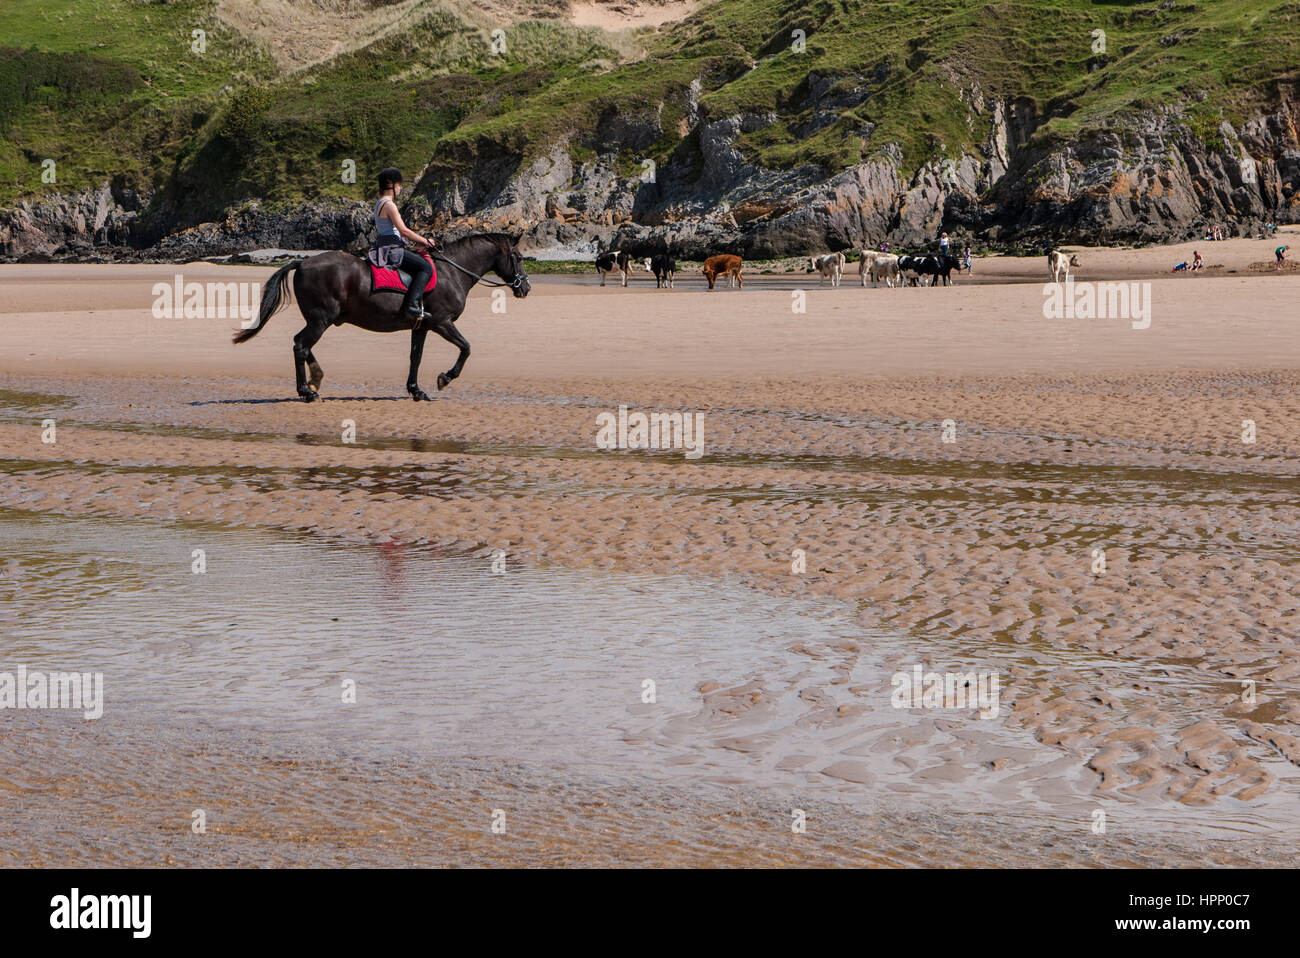 Horse Rider on the beach at Three Cliffs Bay, The Gower, Swansea, Wales. UK - Stock Image